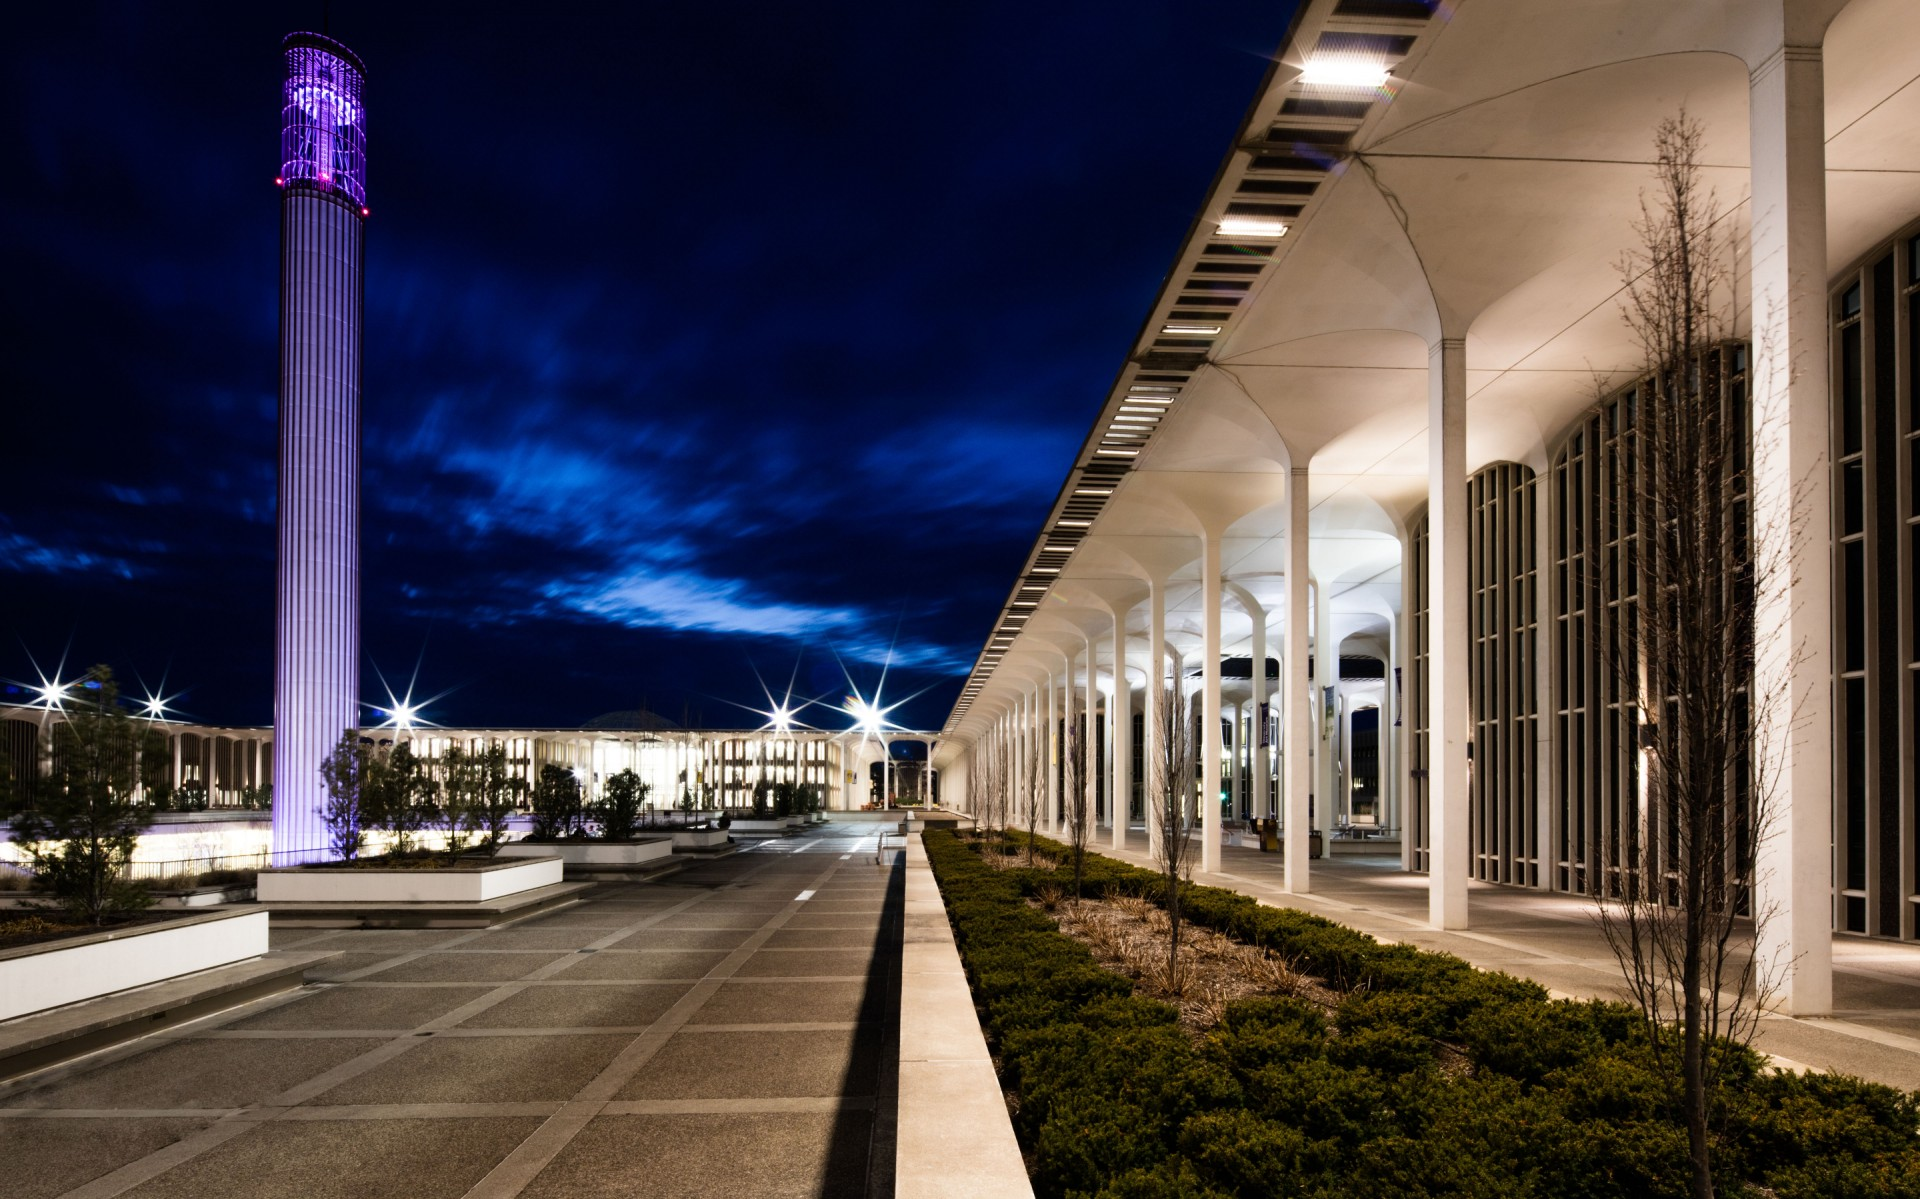 The firm chose Lumenfacade luminaires using a wide beam distribution.